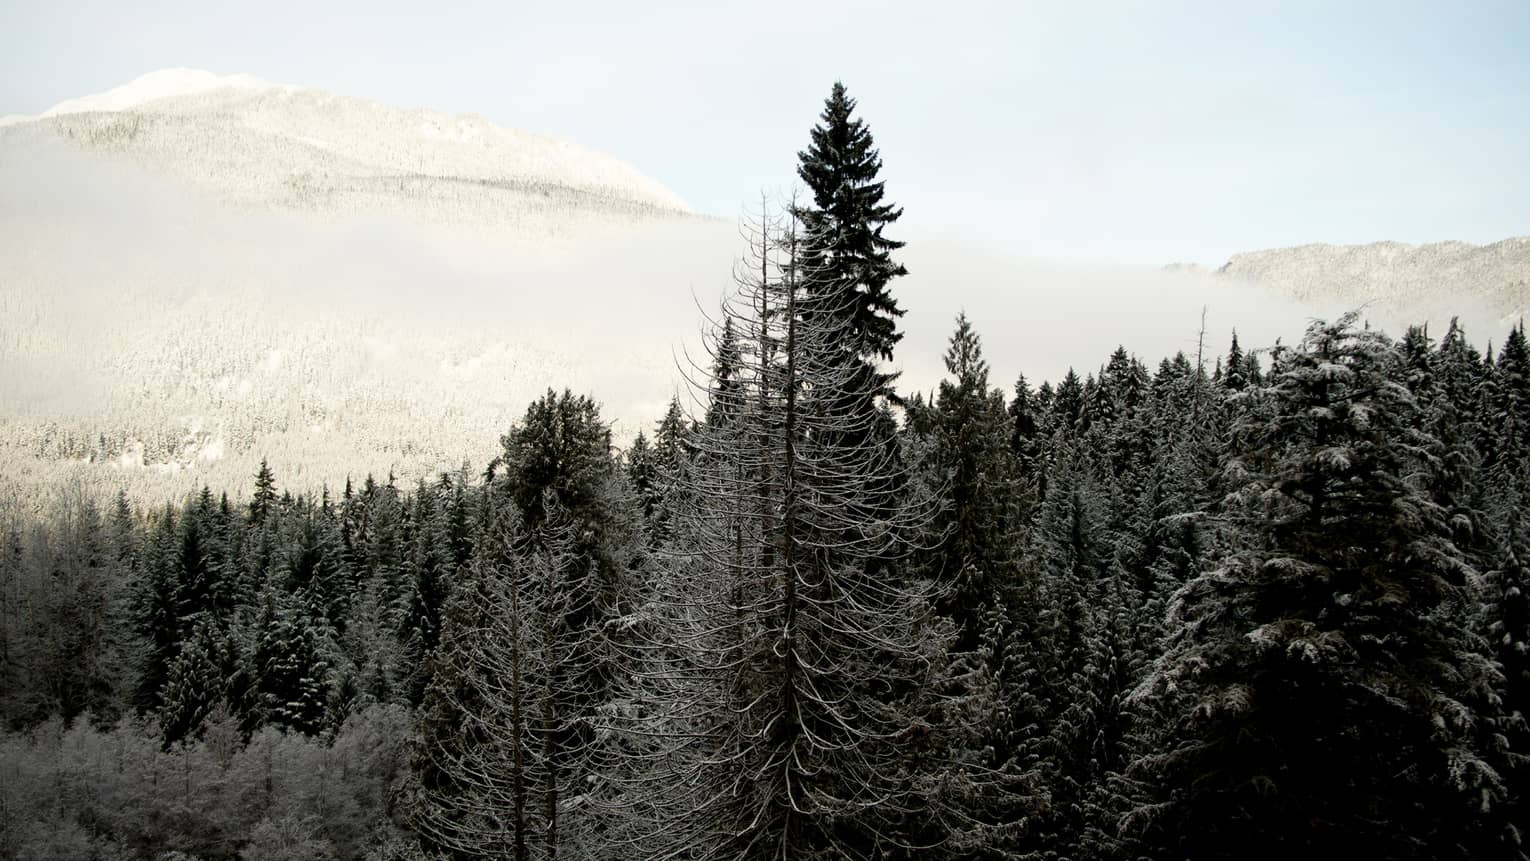 Cedar trees with snow capped mountains in background